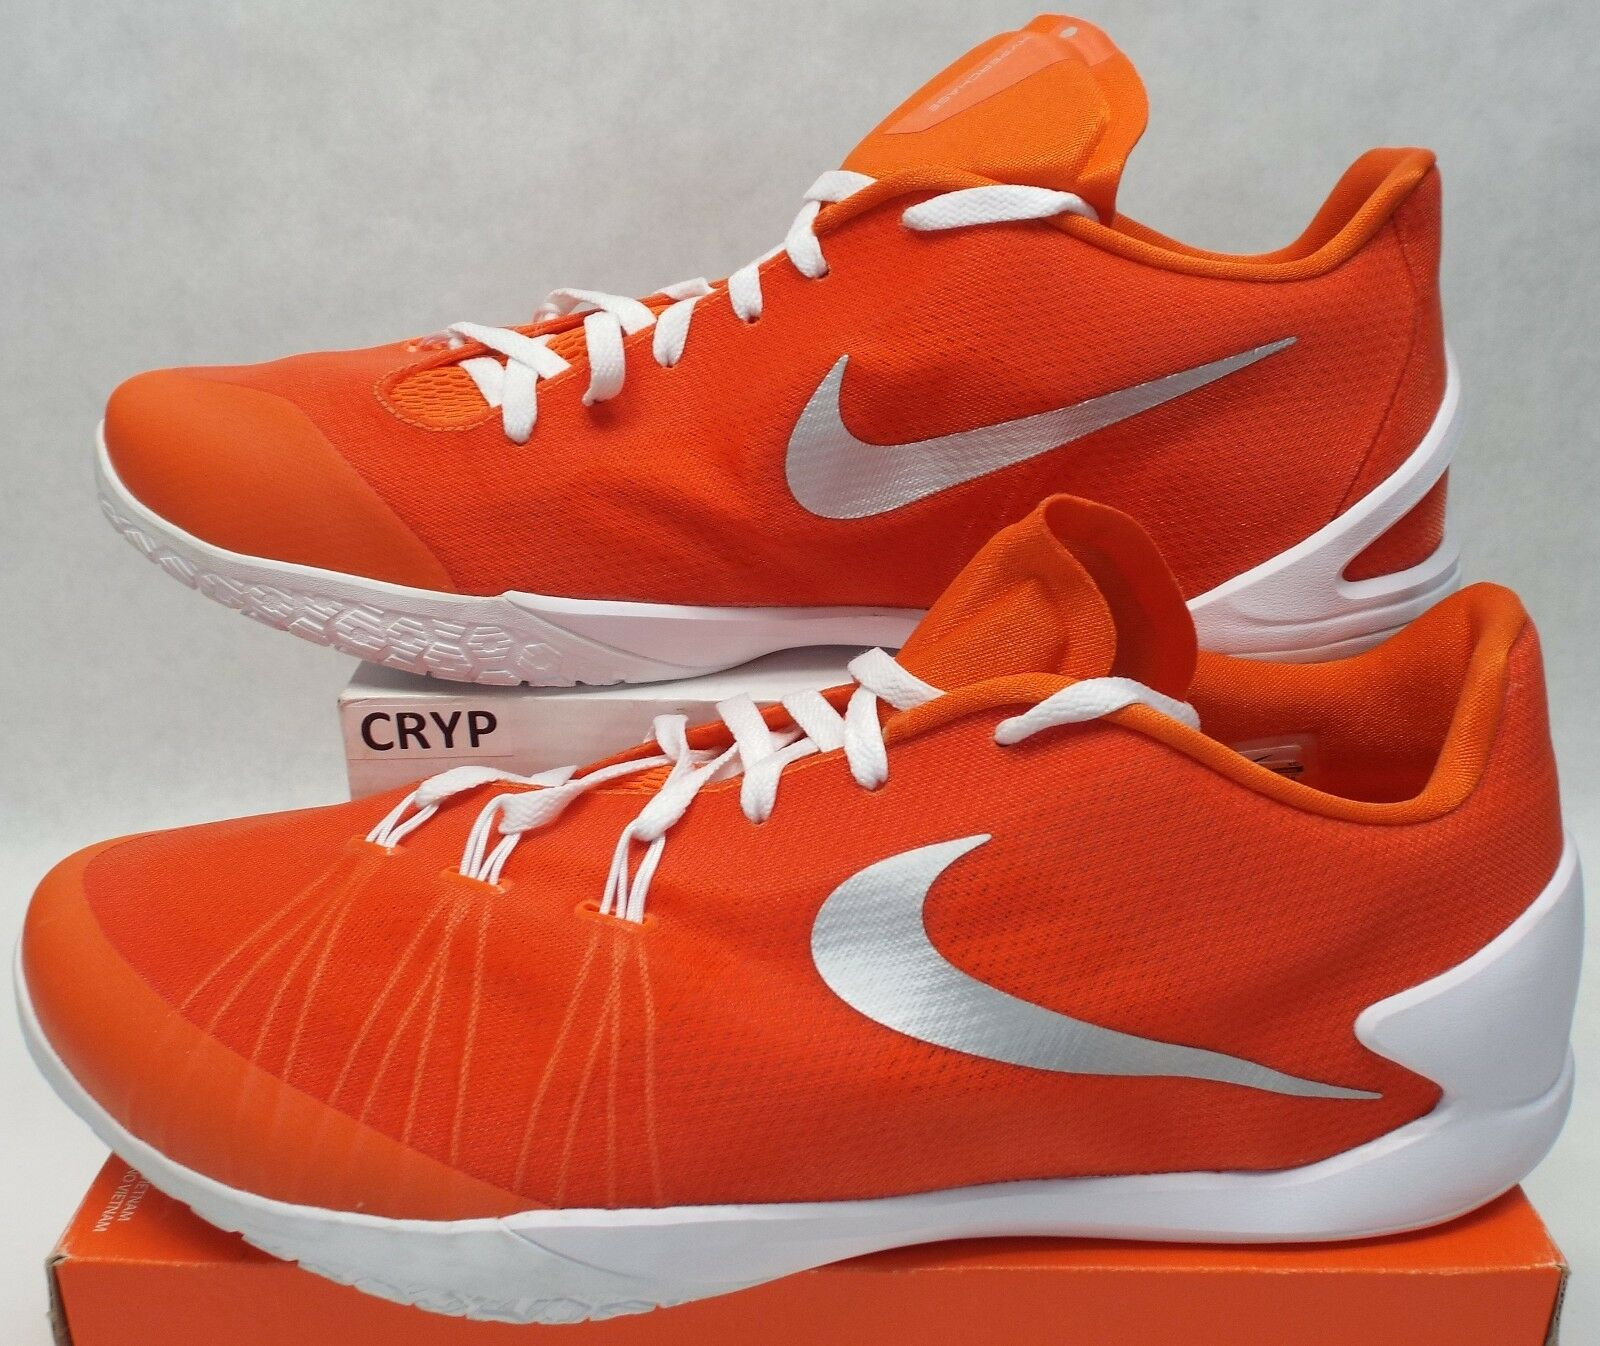 New Hommes 18 NIKE Hyperchase TB Basketball  Orange blanc  Chaussures  Basketball 150 813262-802 0a9cbb